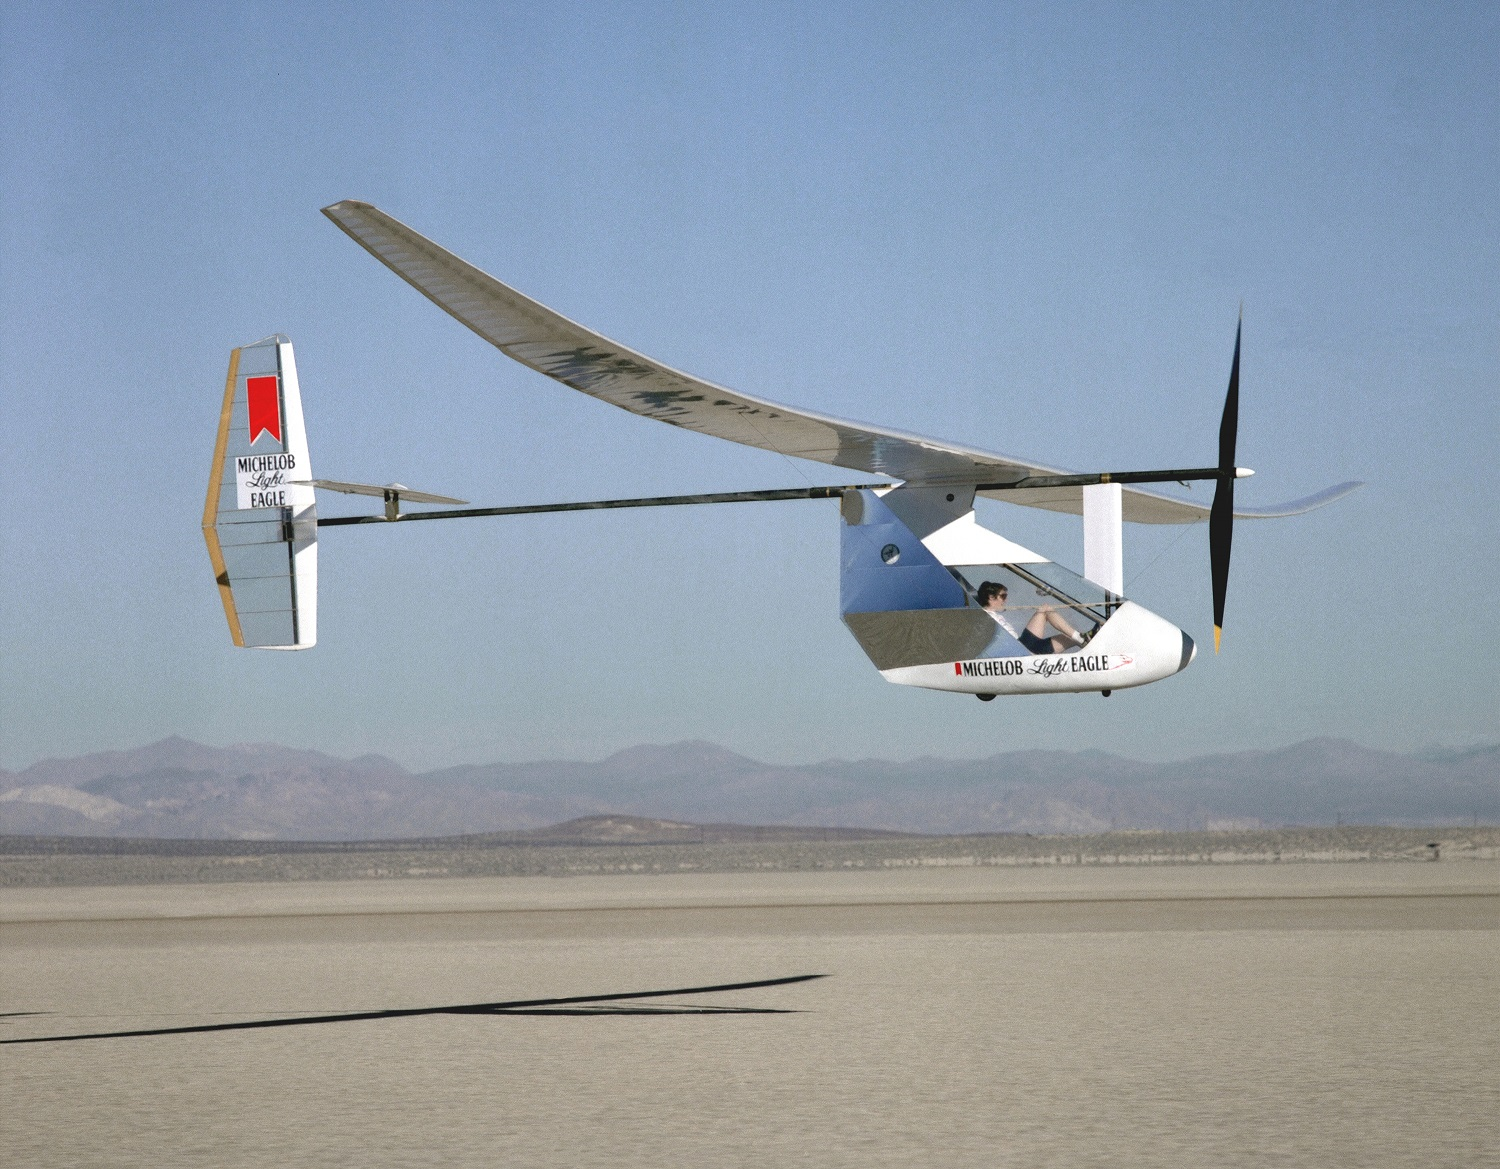 Cafe Foundation Blog Information And Discussion From The 1991 Toyota Aftermarket Power Antenna Wiring Diagram Michelob Eco Eagle Over Roger Dry Lake During 1987 1988 Test Flight This Was Prototype Of Daedalus Which Would Set World Record 72 Miles